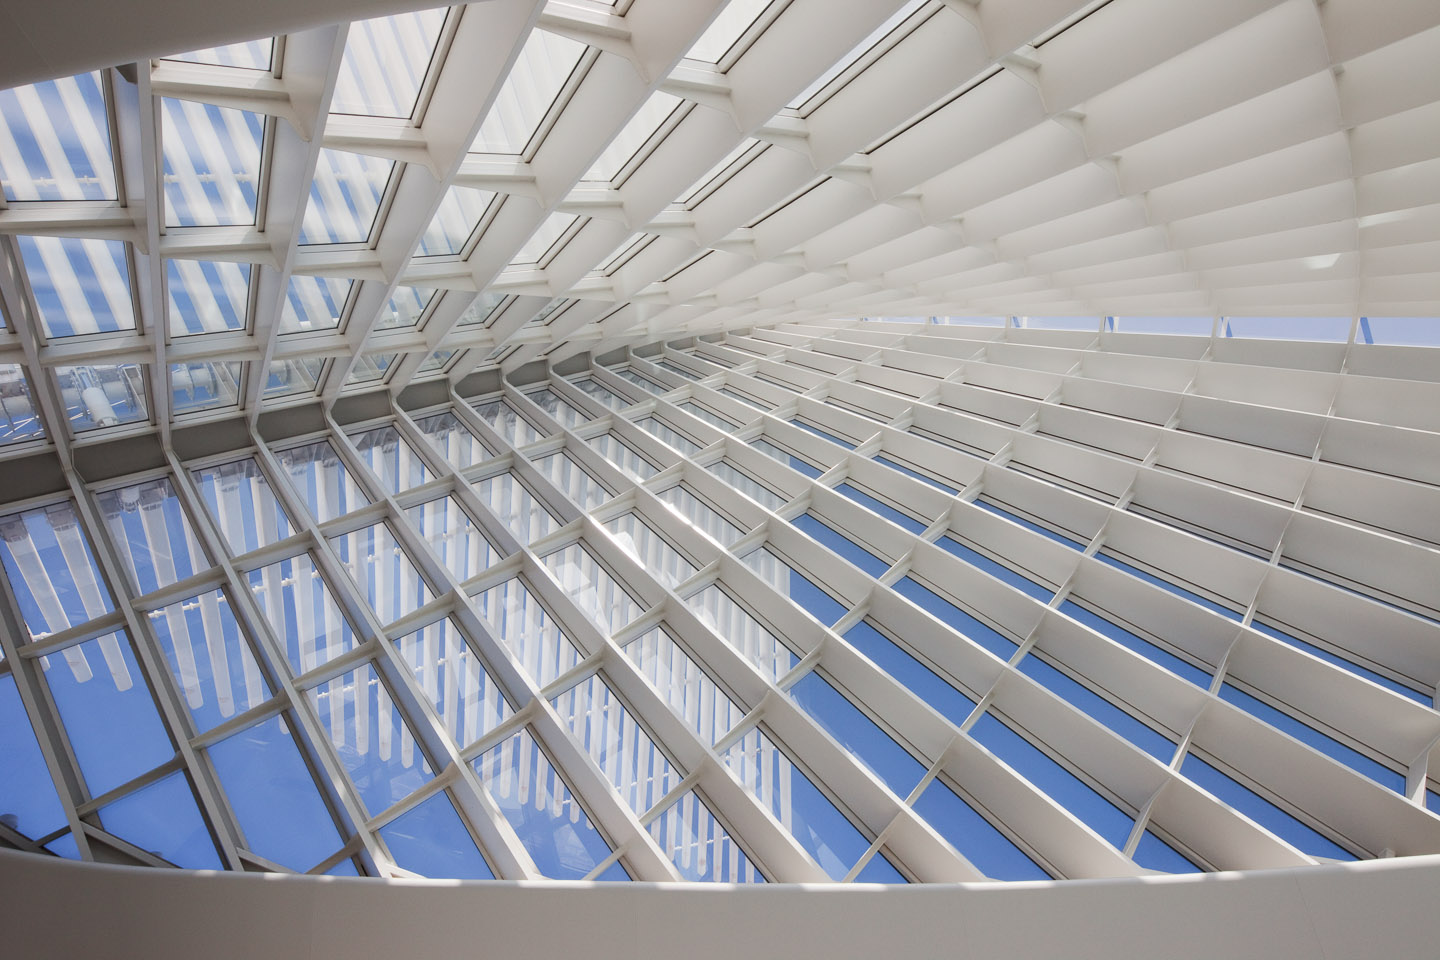 a vaulted steel & glass ceiling covers the main gallery of the Milwaukee Art Museum, designed by Santiago Calatrava, photographed by Jacob Rosenfeld